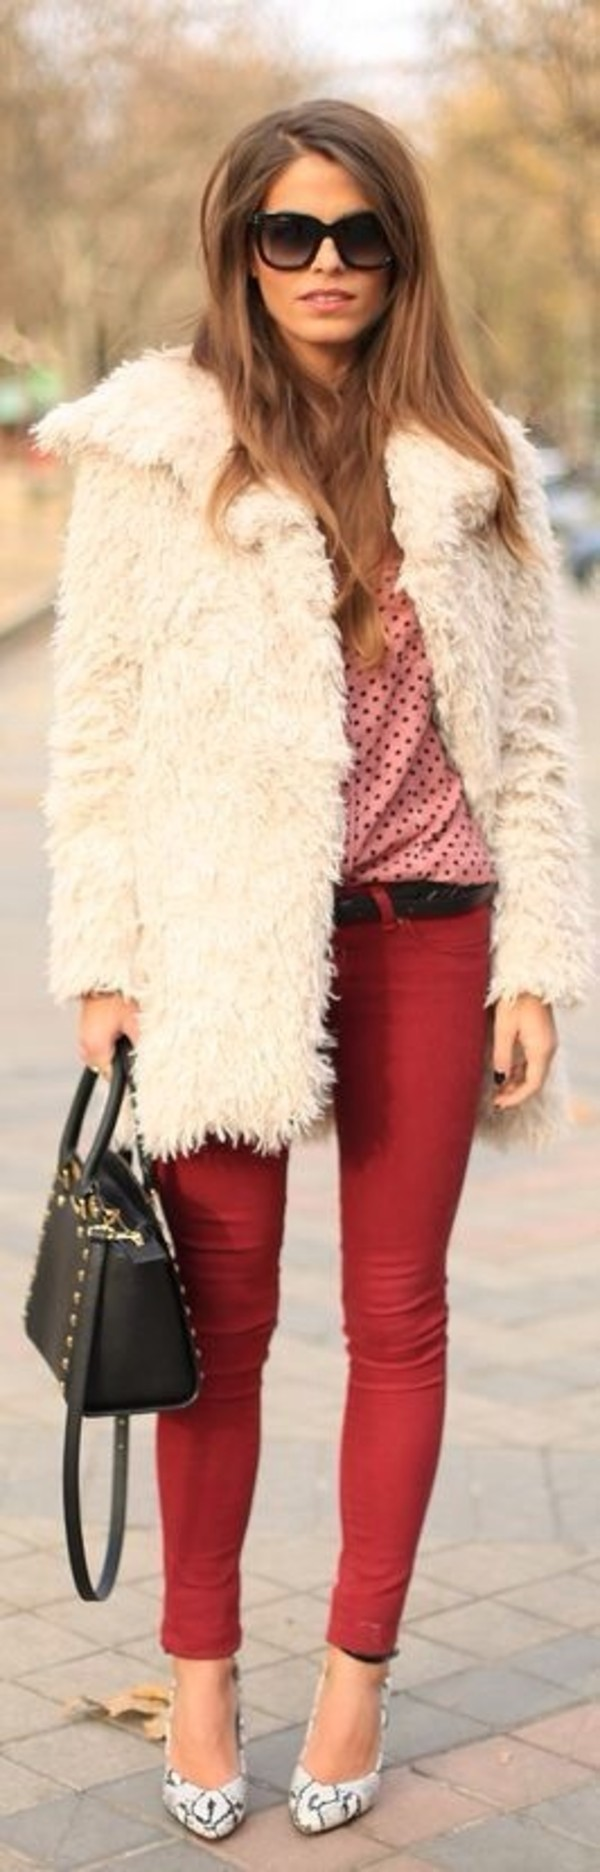 coat fur fur coat jacket white fur fur jacket jeans shirt